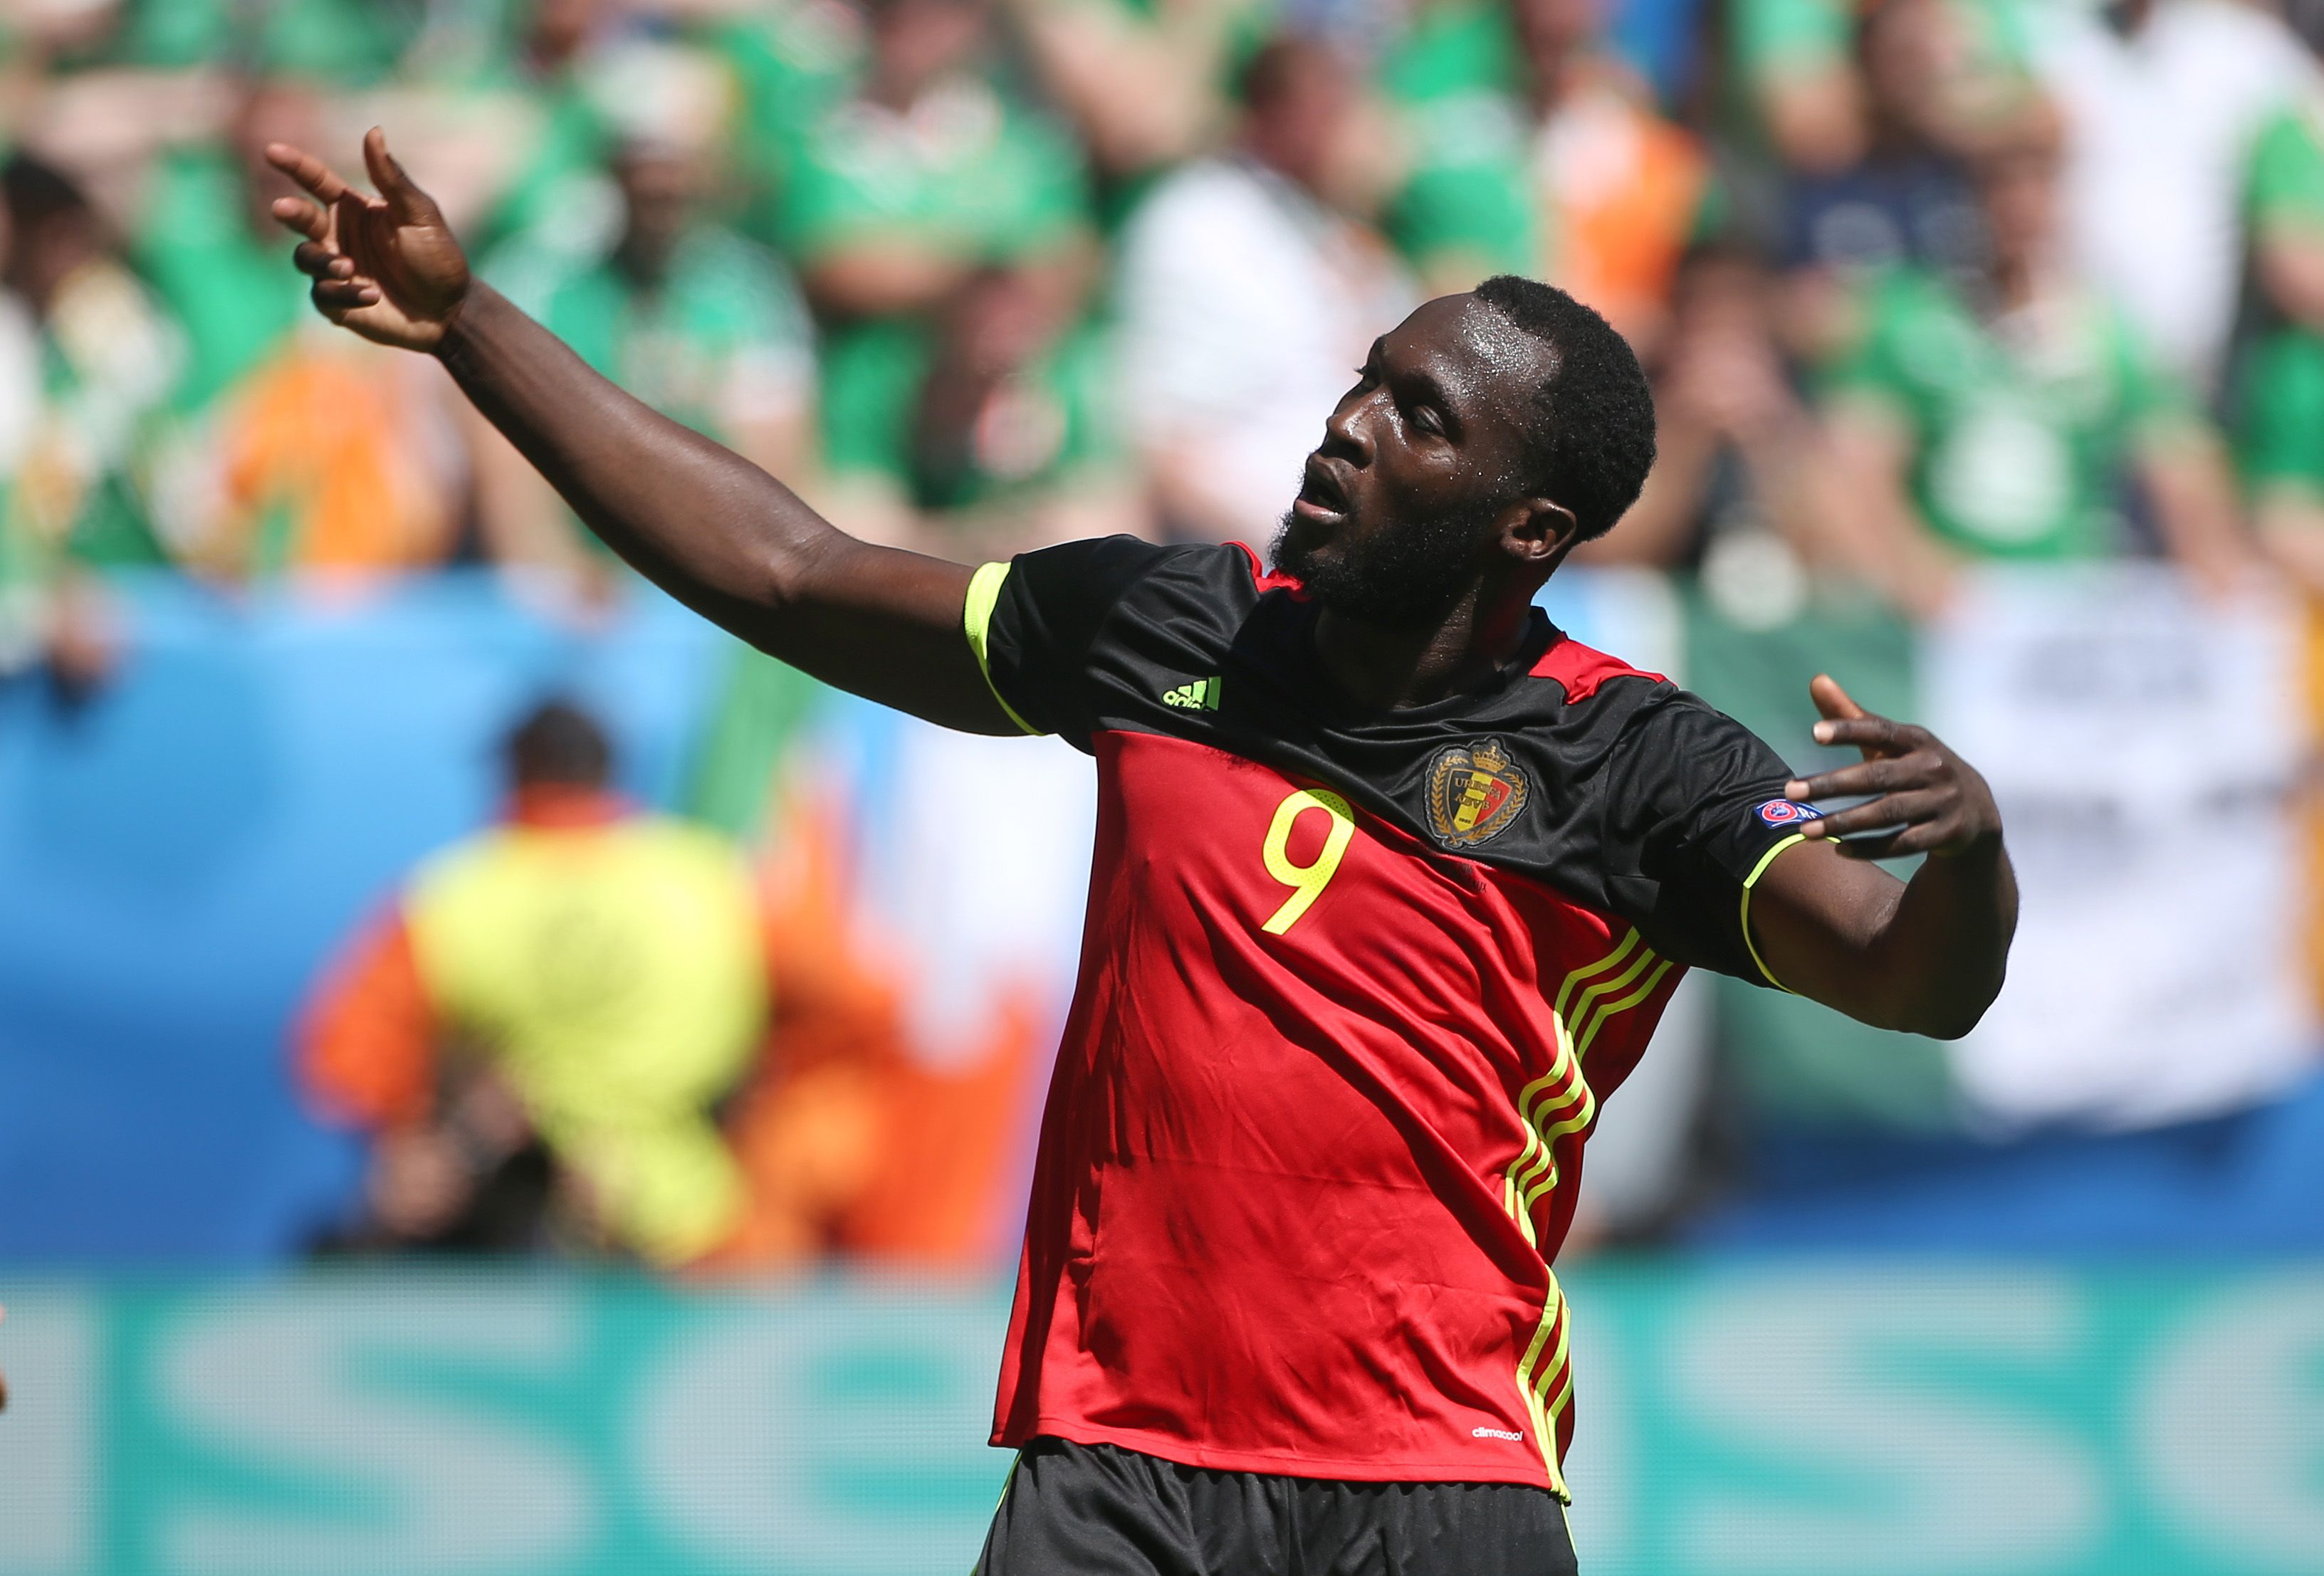 Chelsea star Eden Hazard gives support for potential Romelu Lukaku transfer